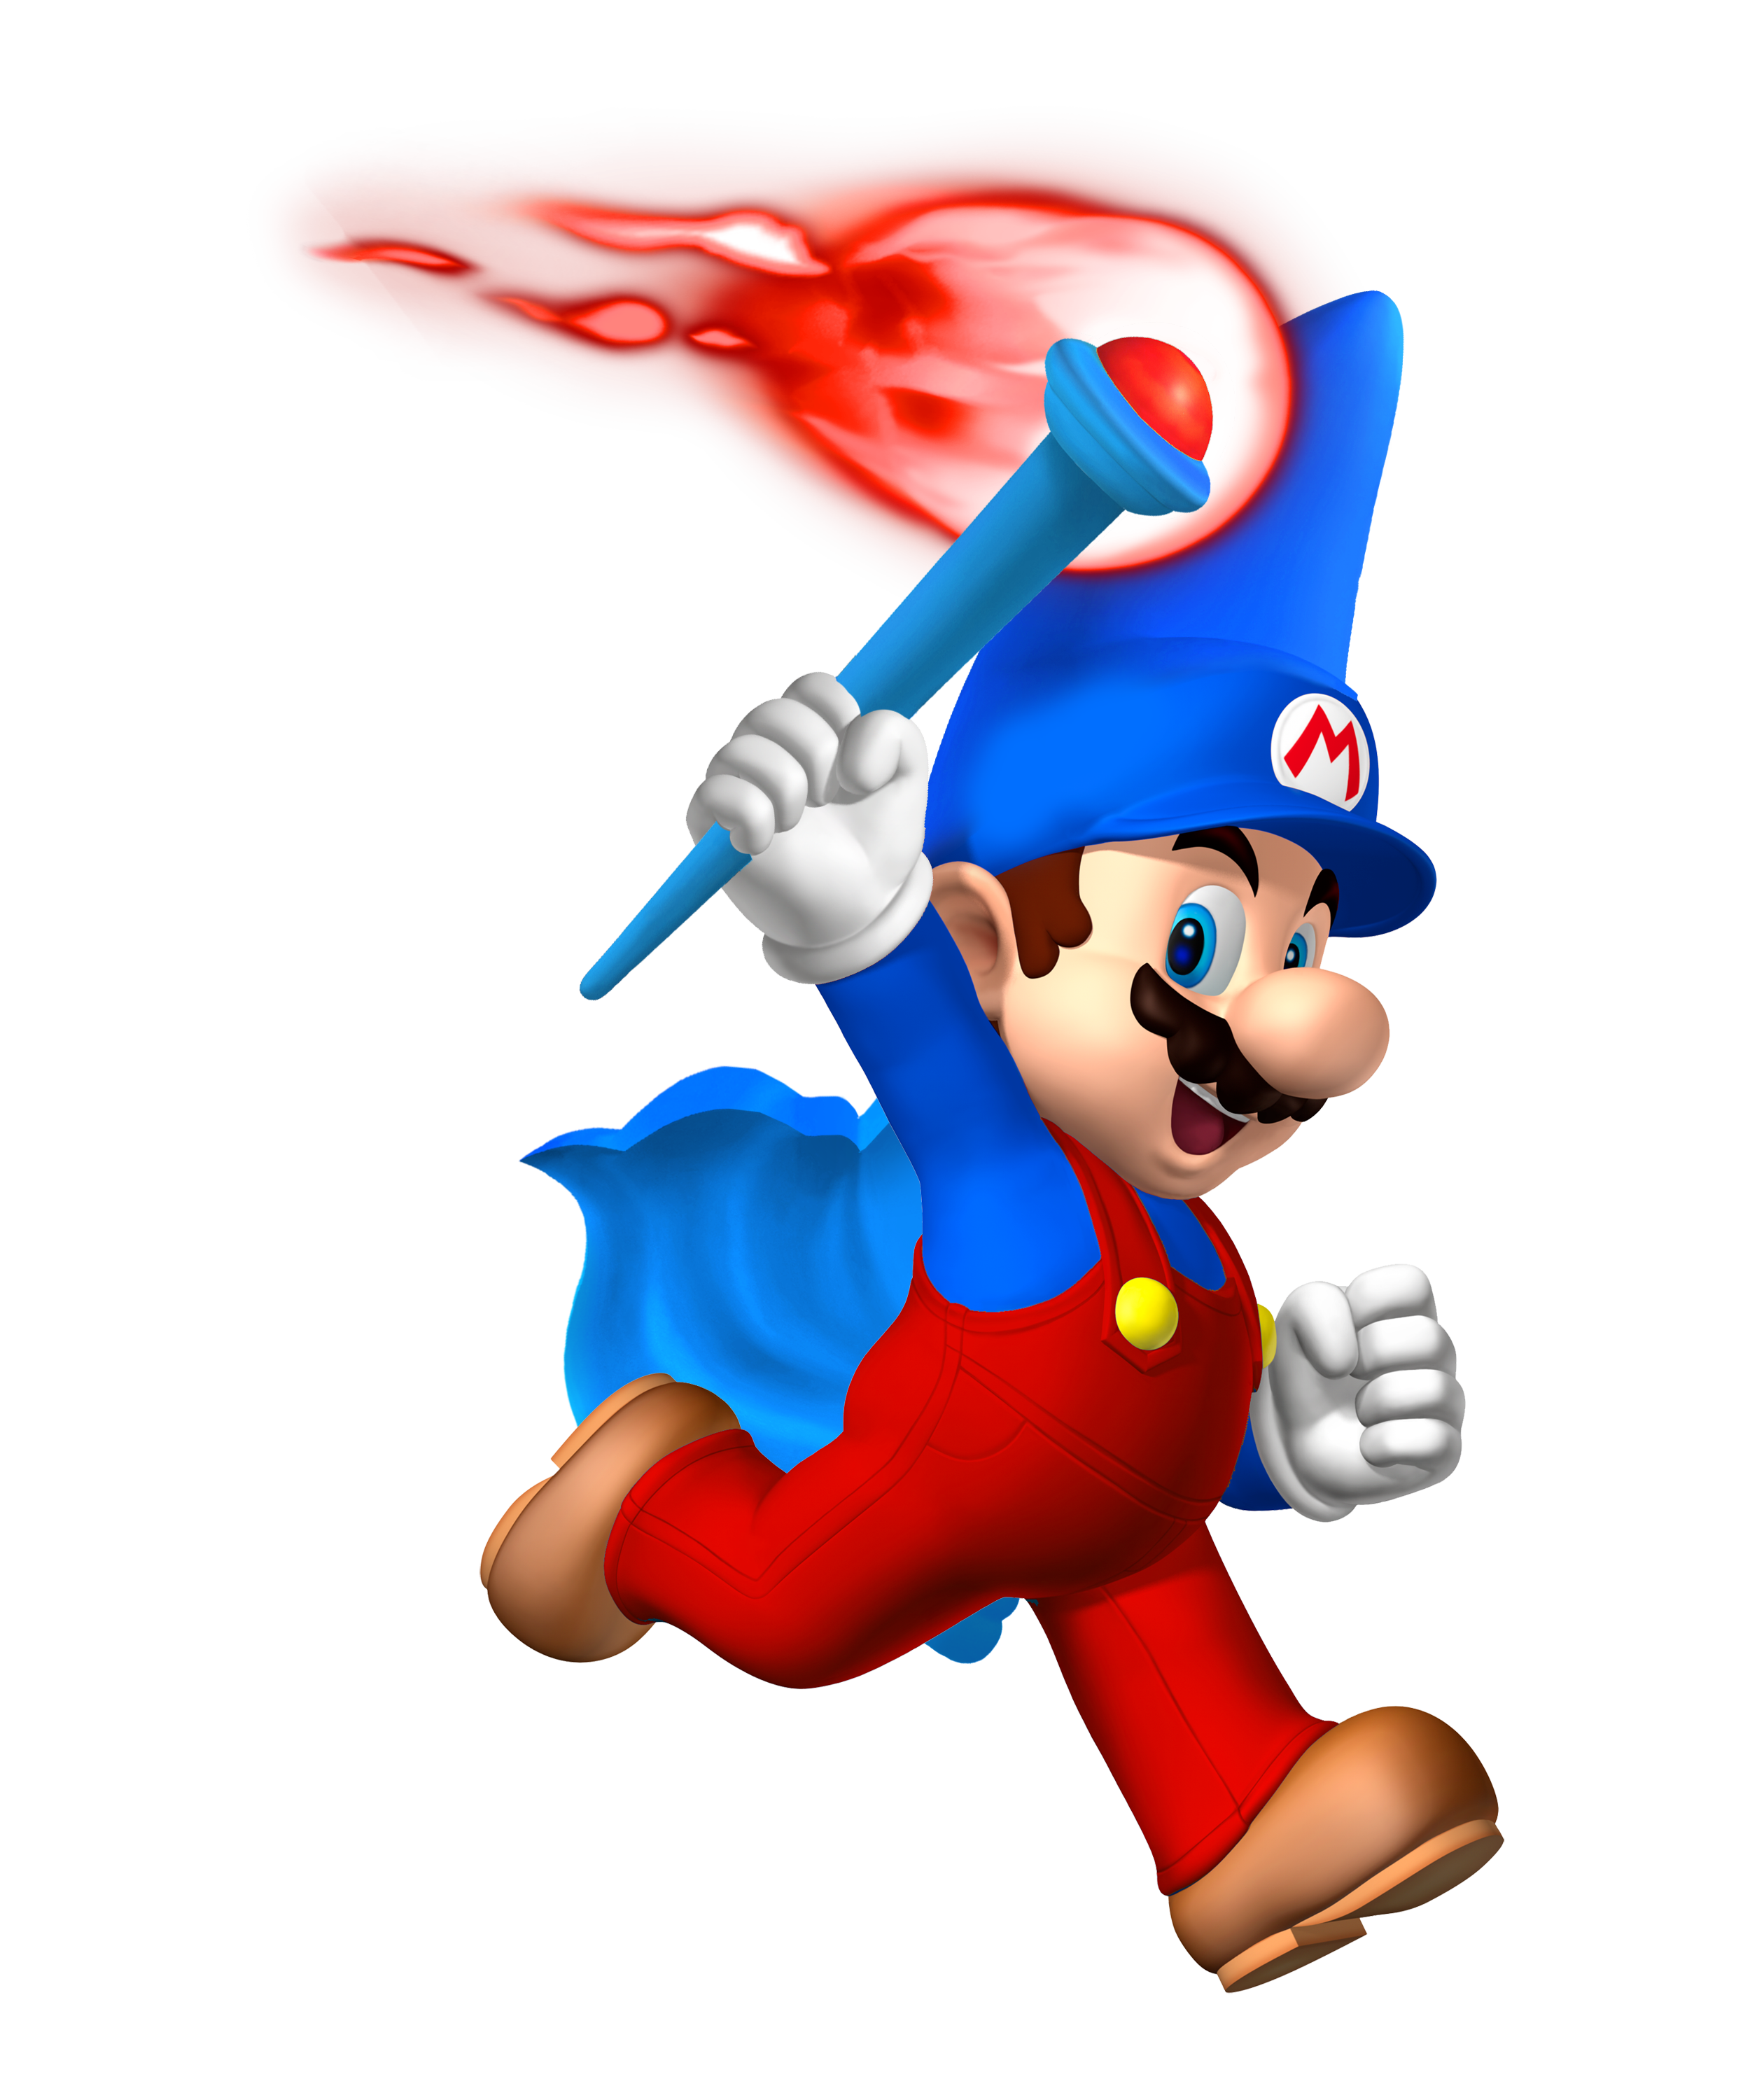 Magic mario fantendo nintendo. Oil clipart geyser